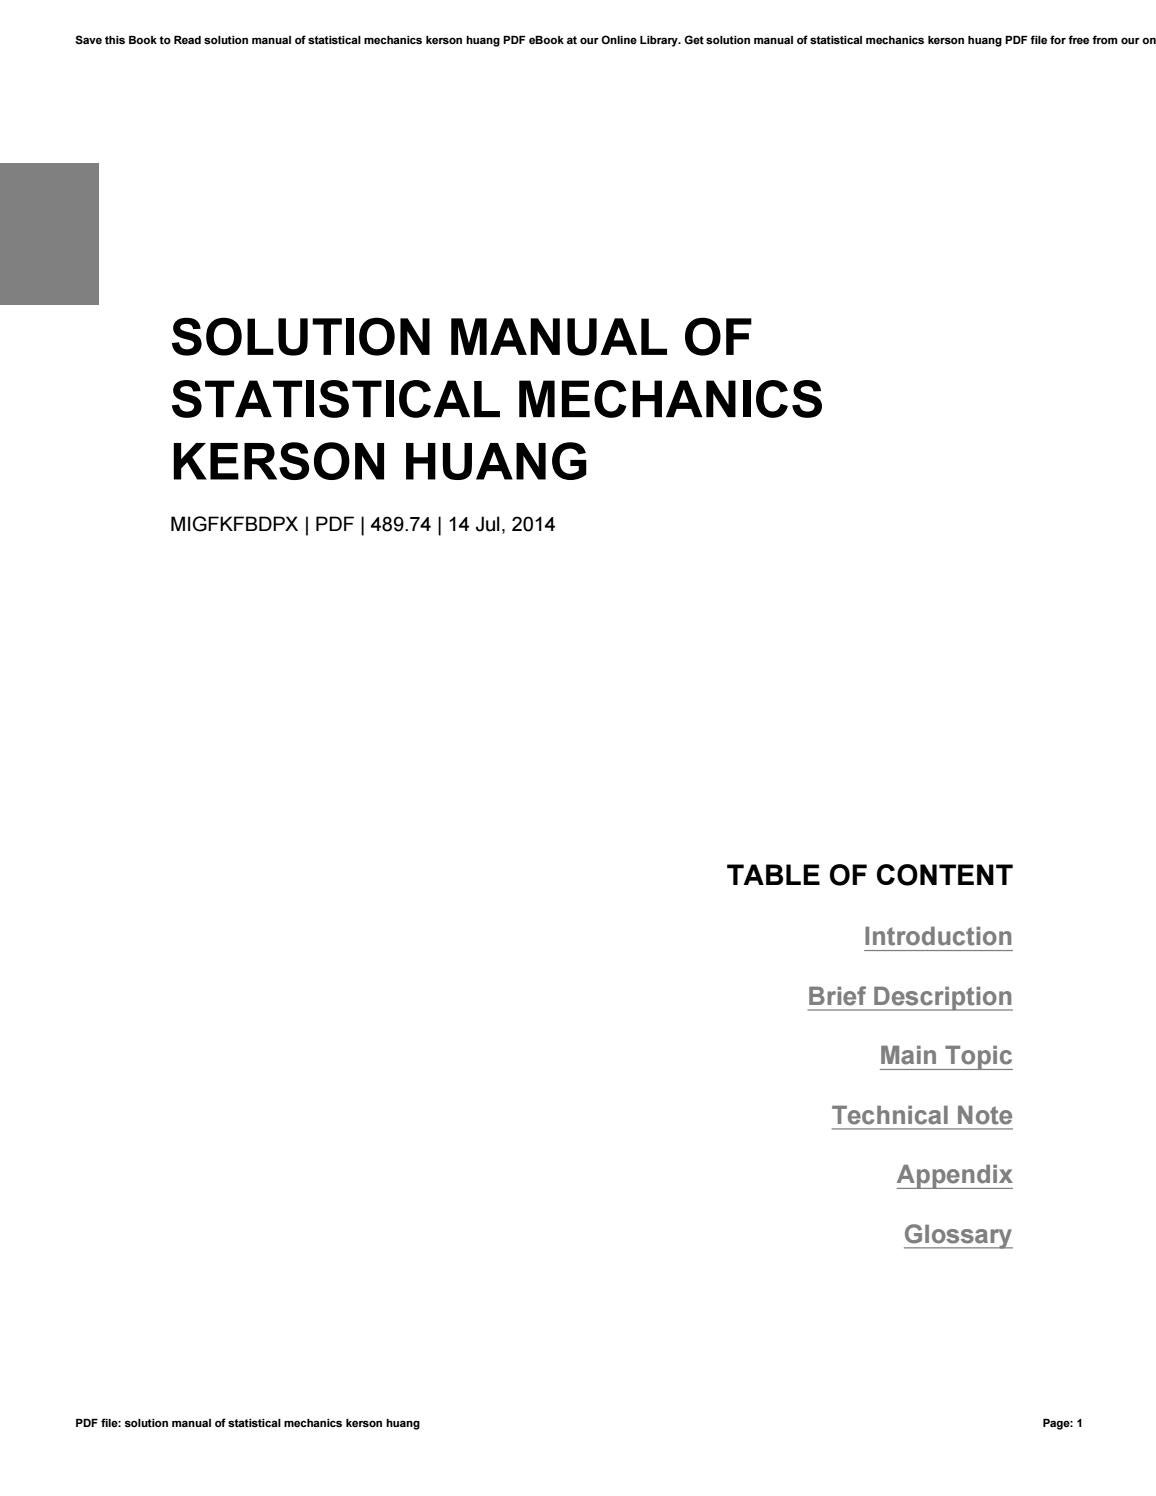 Solution manual of statistical mechanics kerson huang by Michael Calderon -  issuu